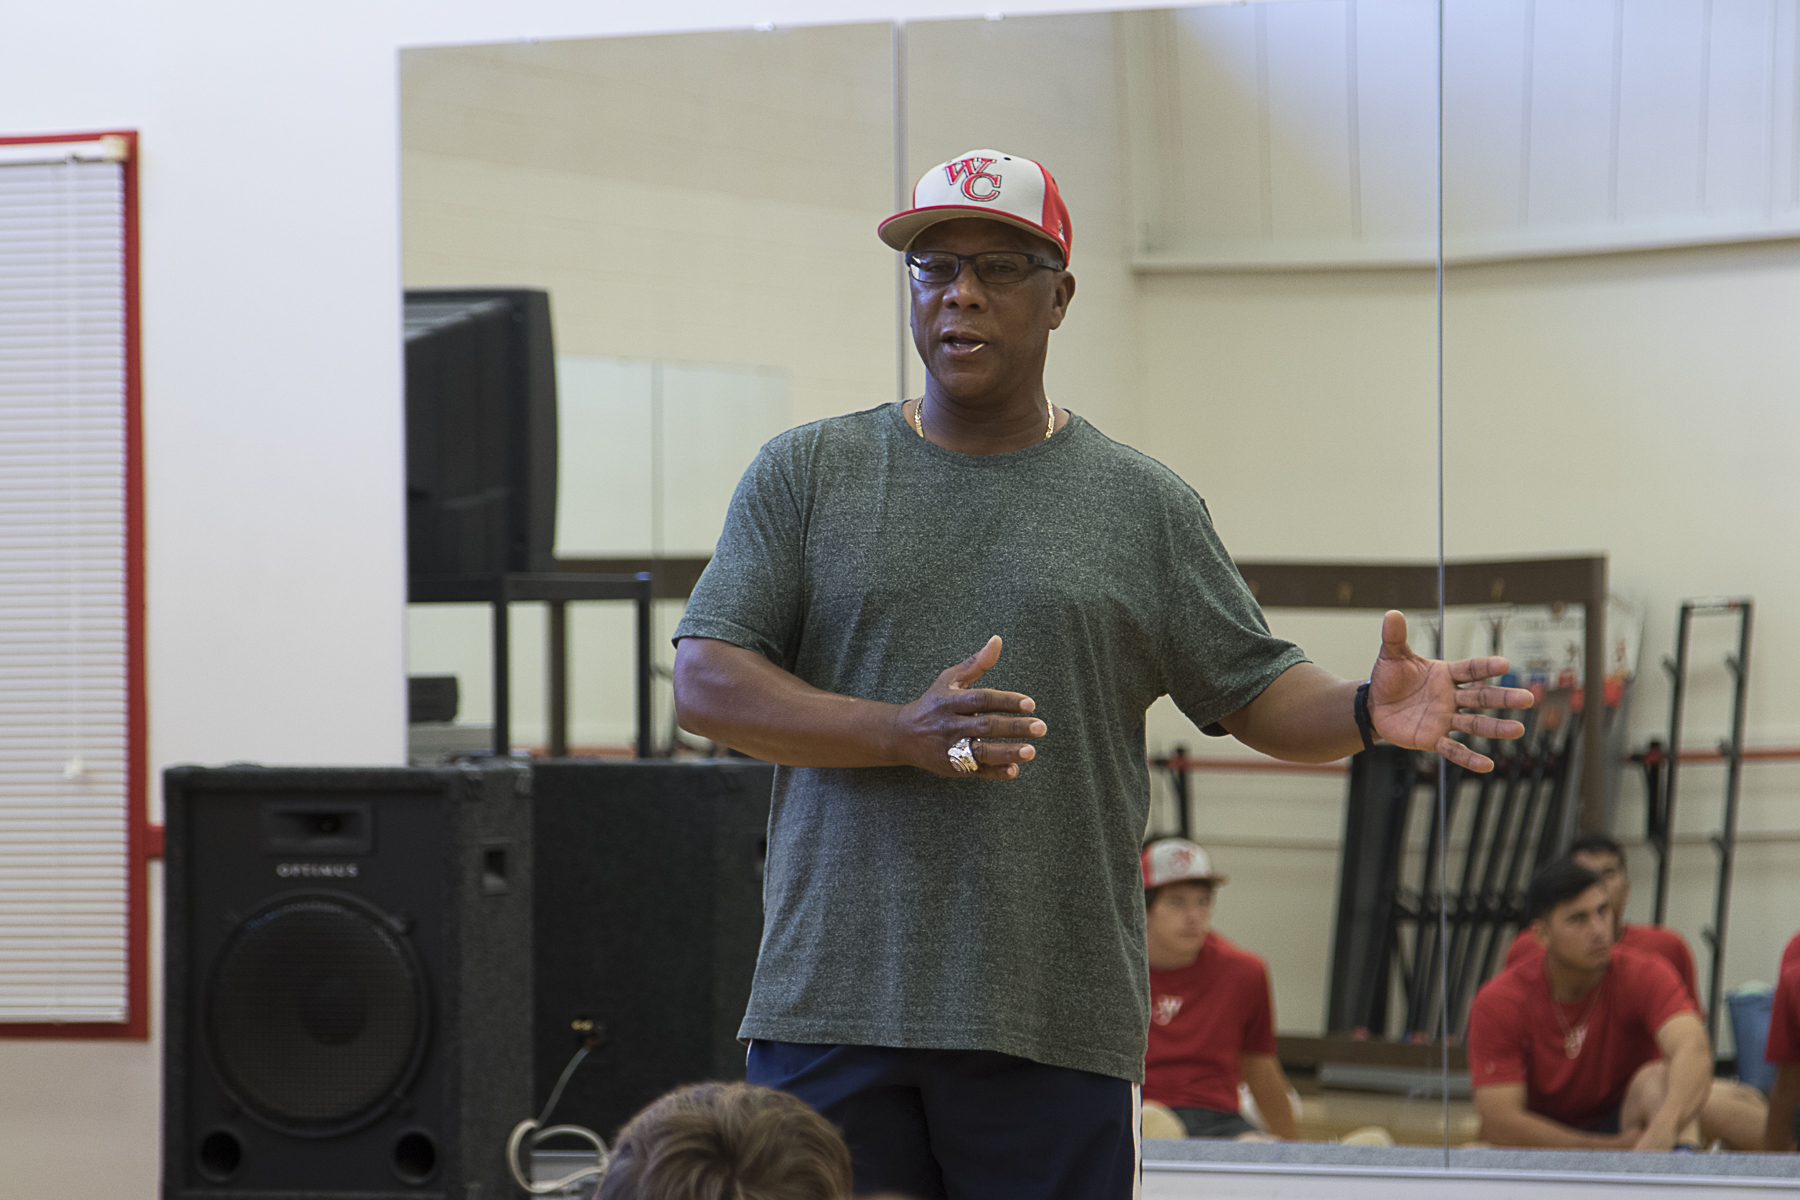 MAJOR LEAGUE ADVICE - Professional baseball coach visits Pioneers